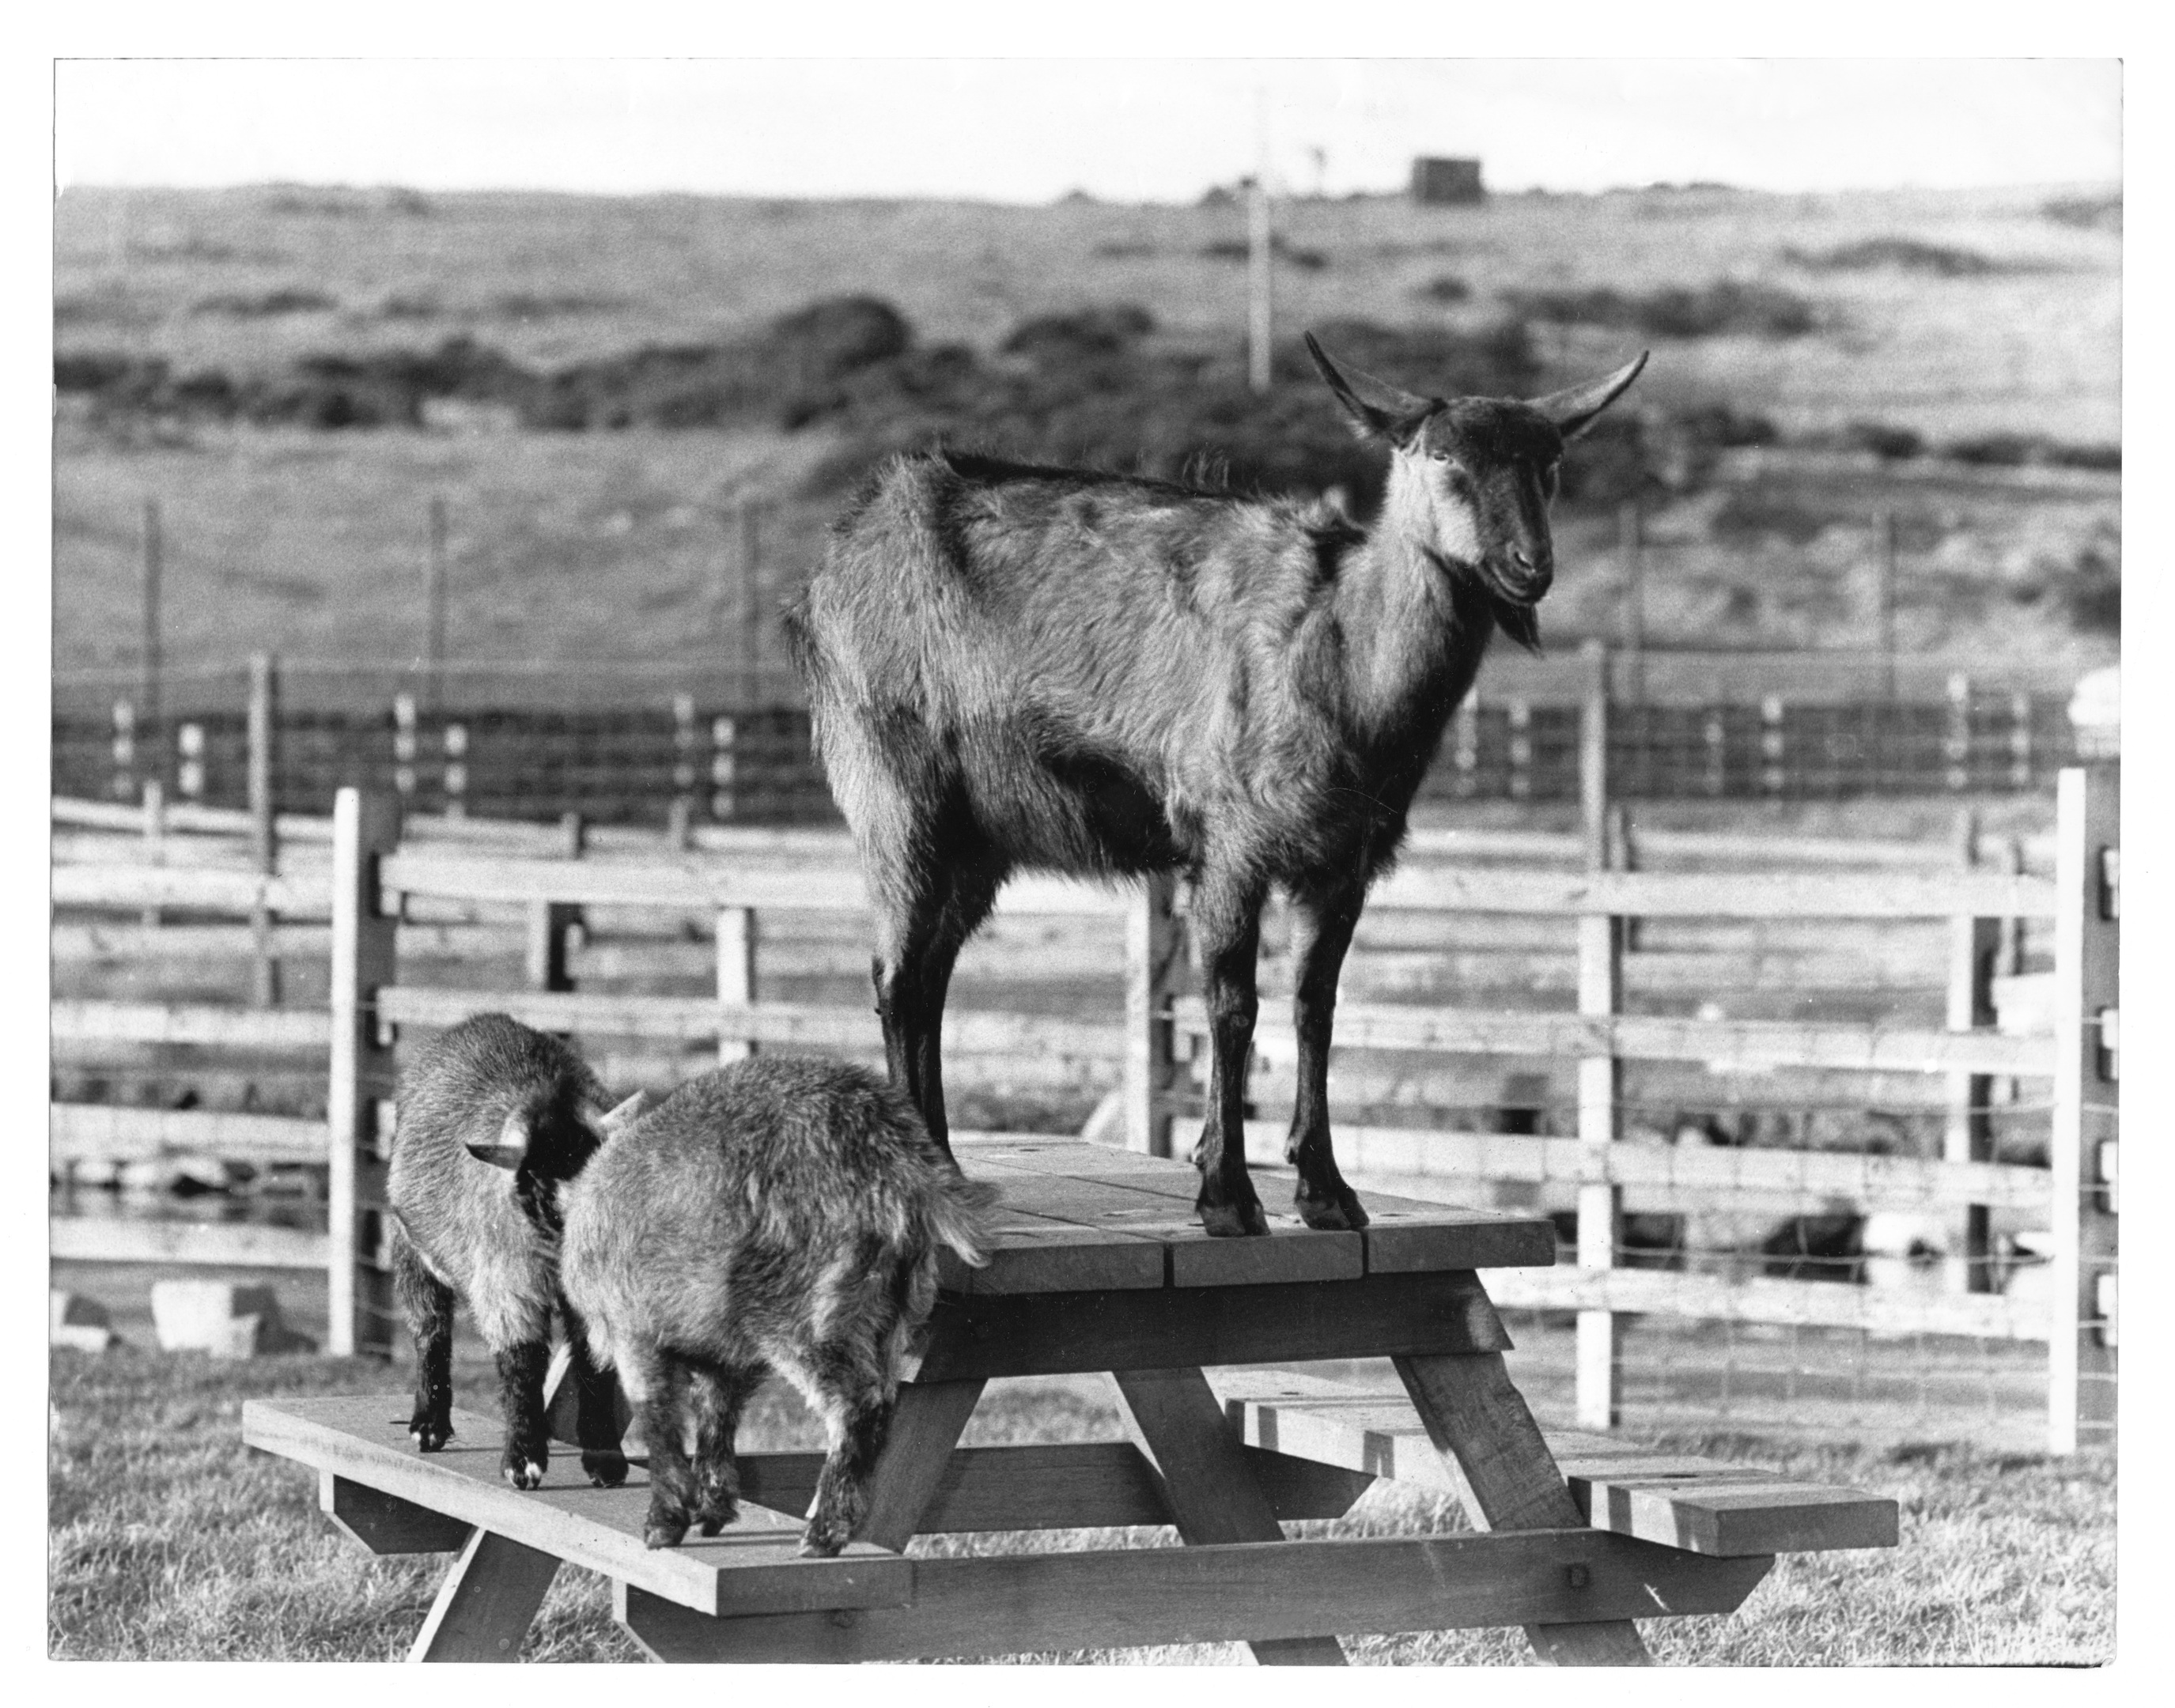 A Cameroonian pigmy goat shows whose in charge by climbing on to a picnic table.